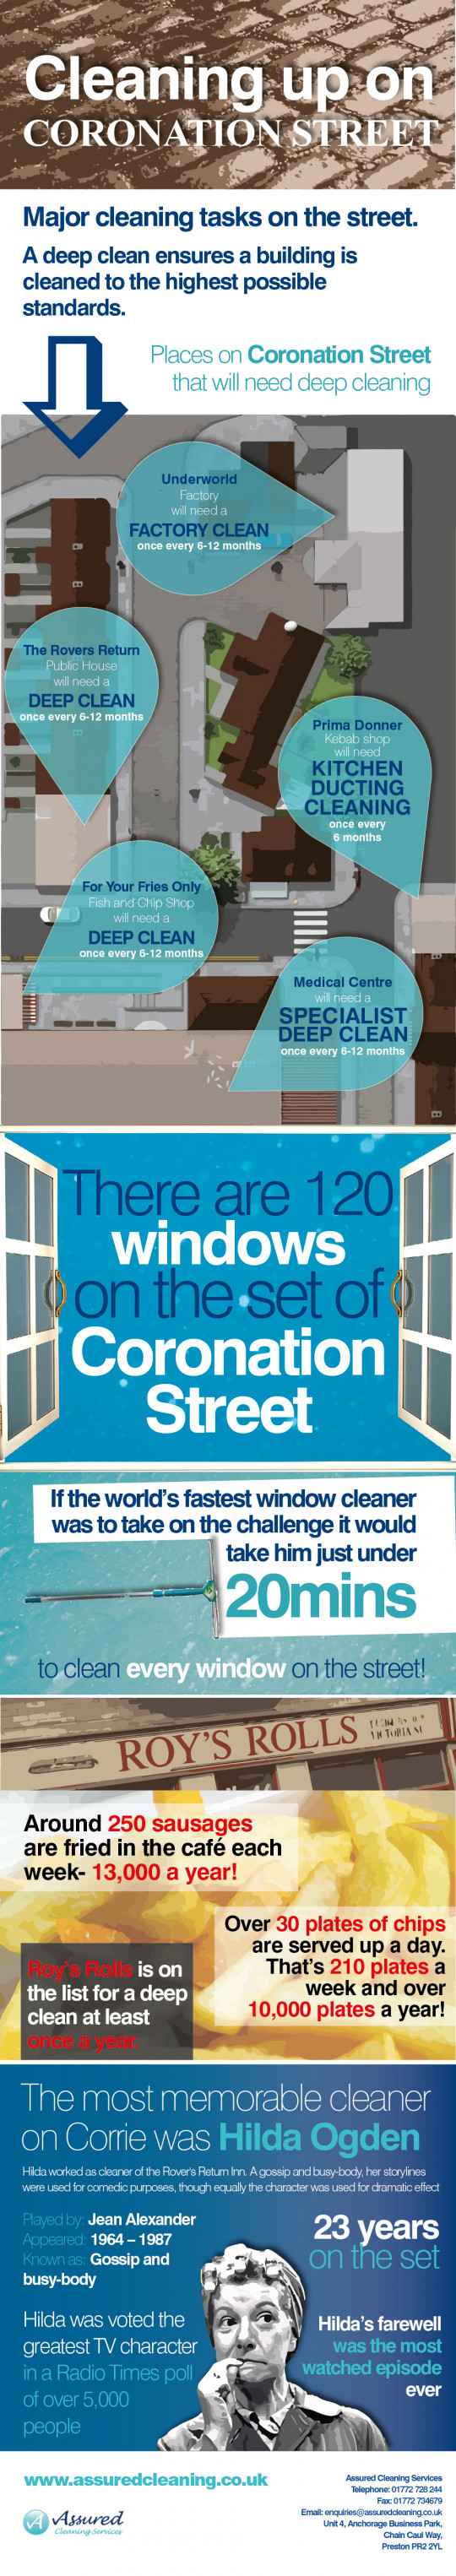 Cleaning up on Coronation Street